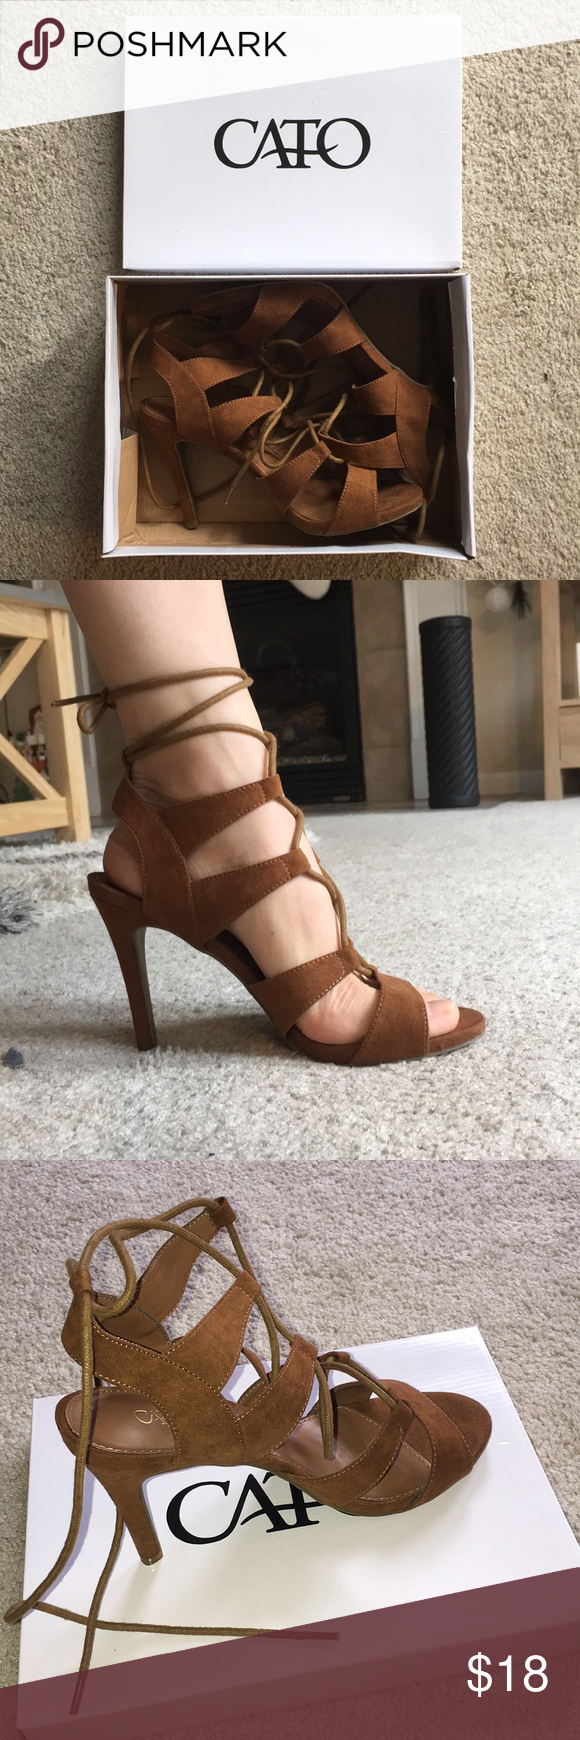 Faux suede lace up heels shoes heels conditioning and customer